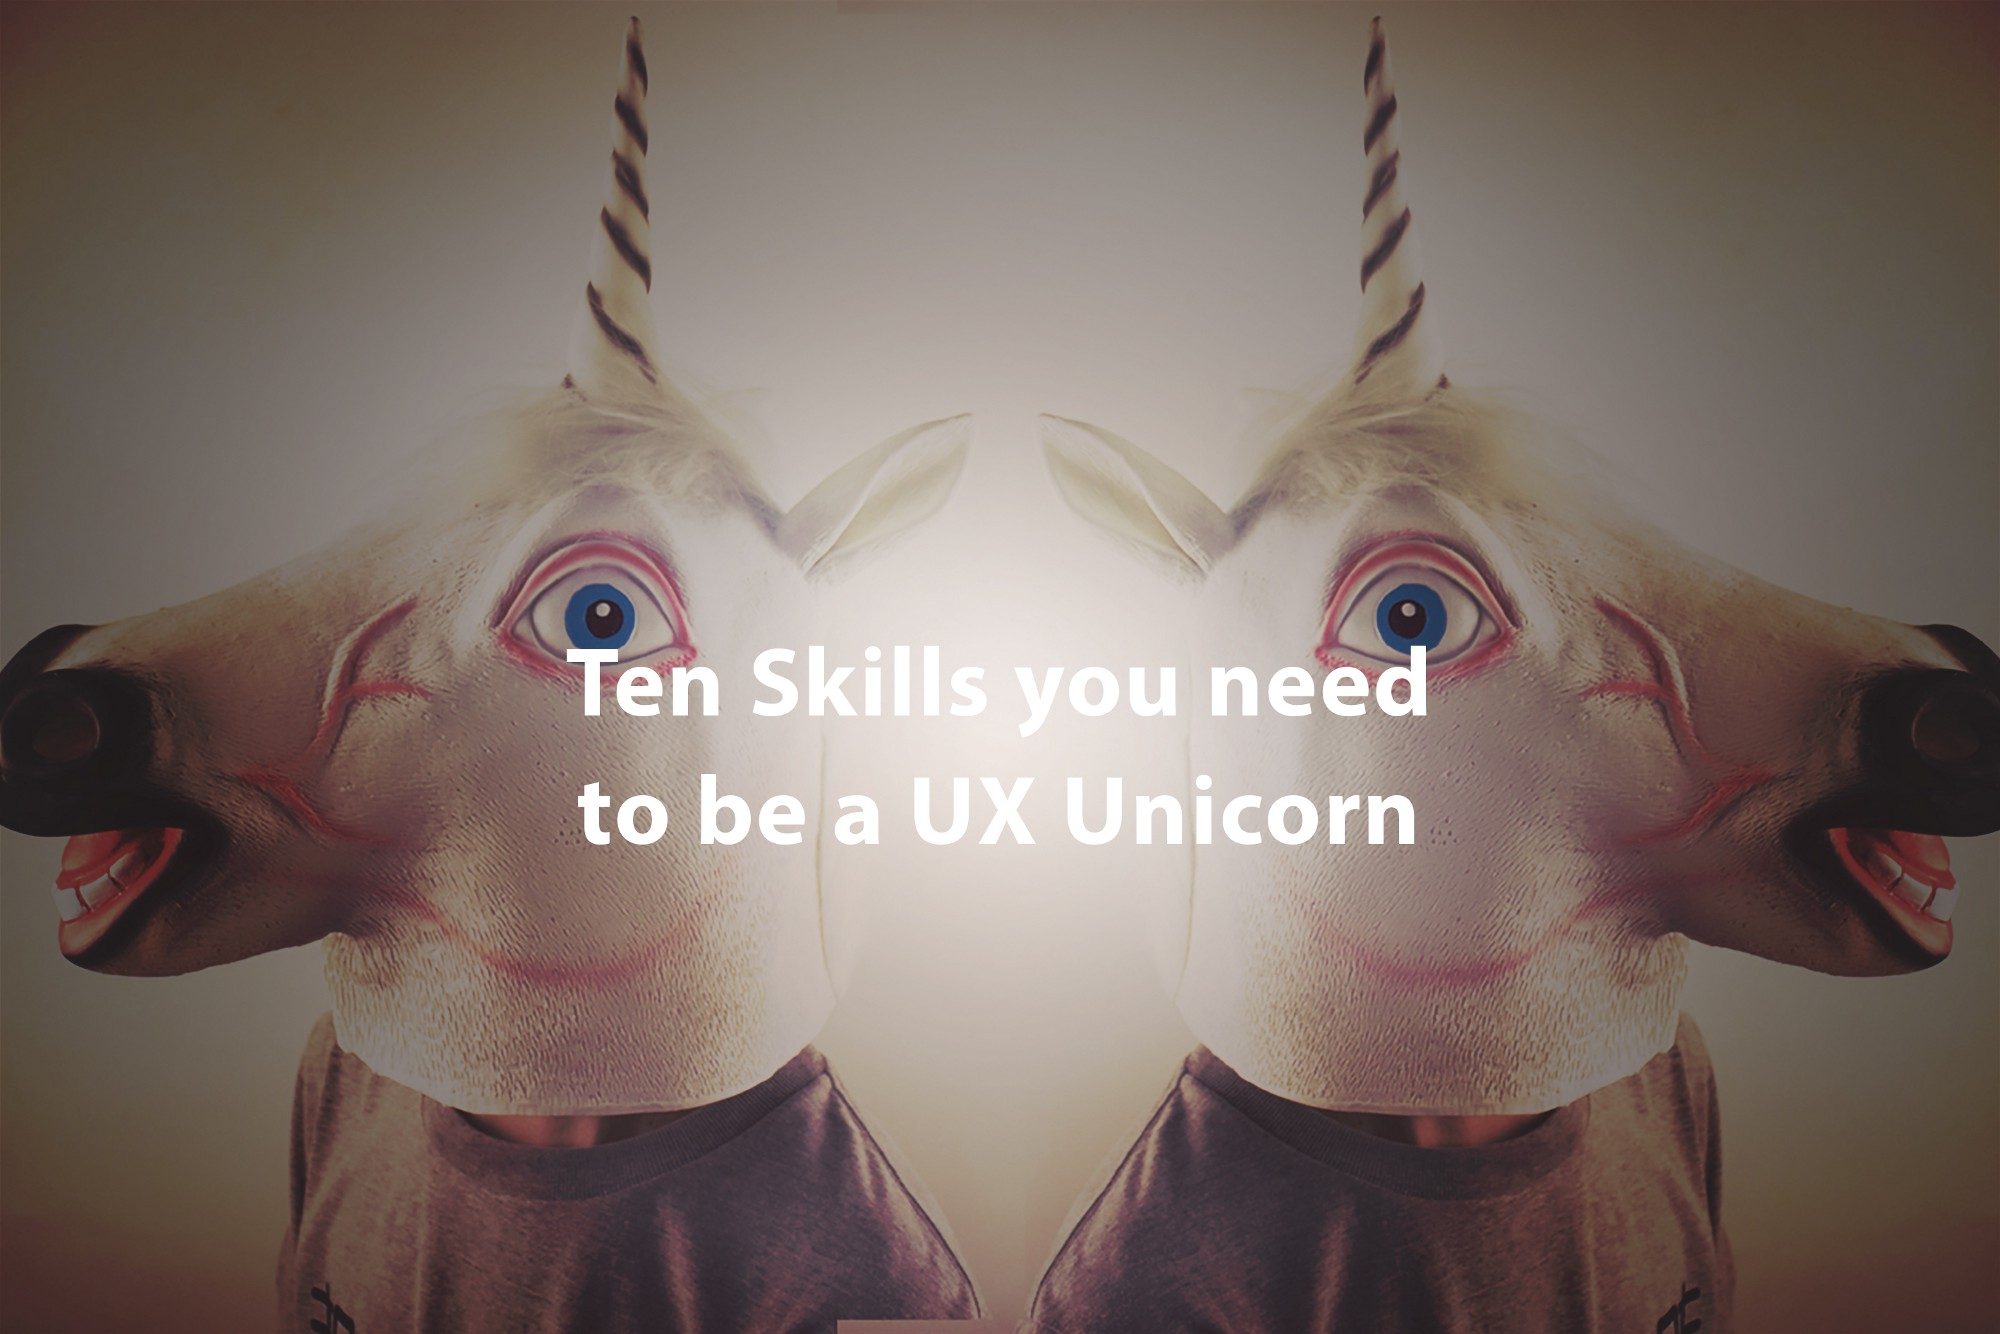 Skills Needed To Be An Architect ten skills you need to be a ux unicorn – ux much?™ – medium